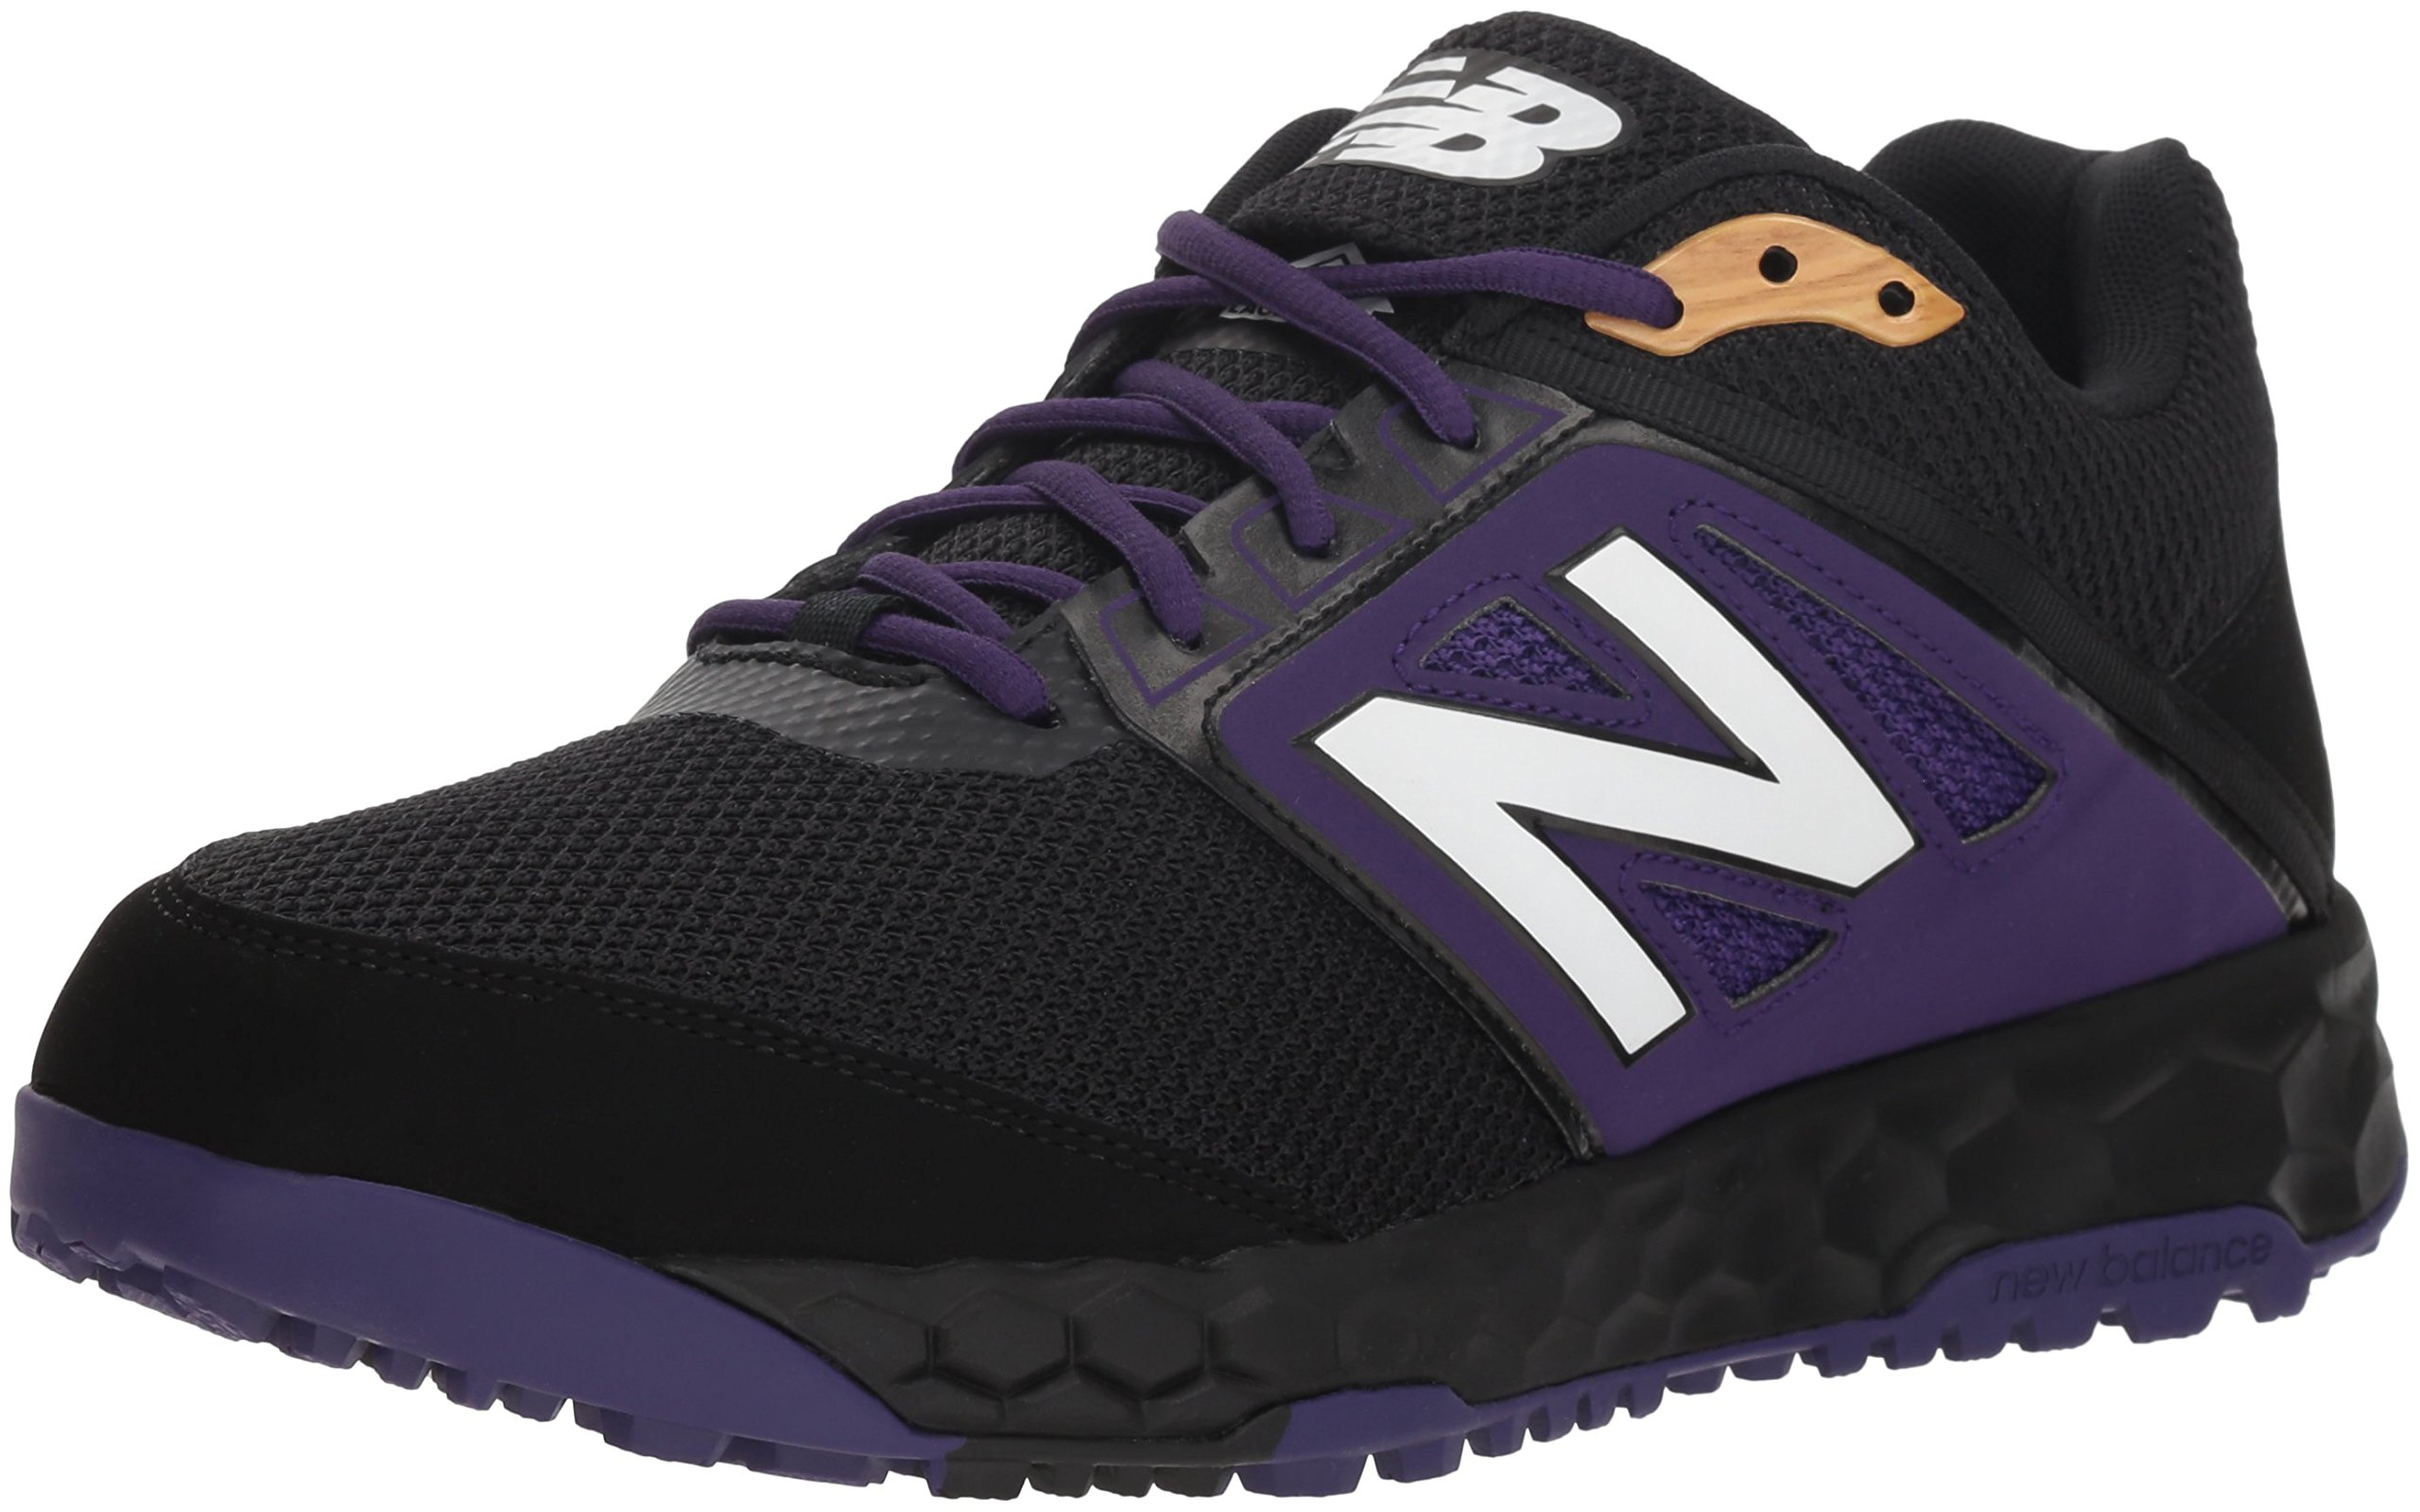 New Balance Men's 3000v4 Turf Baseball Shoe, Black/Purple, 5 D US